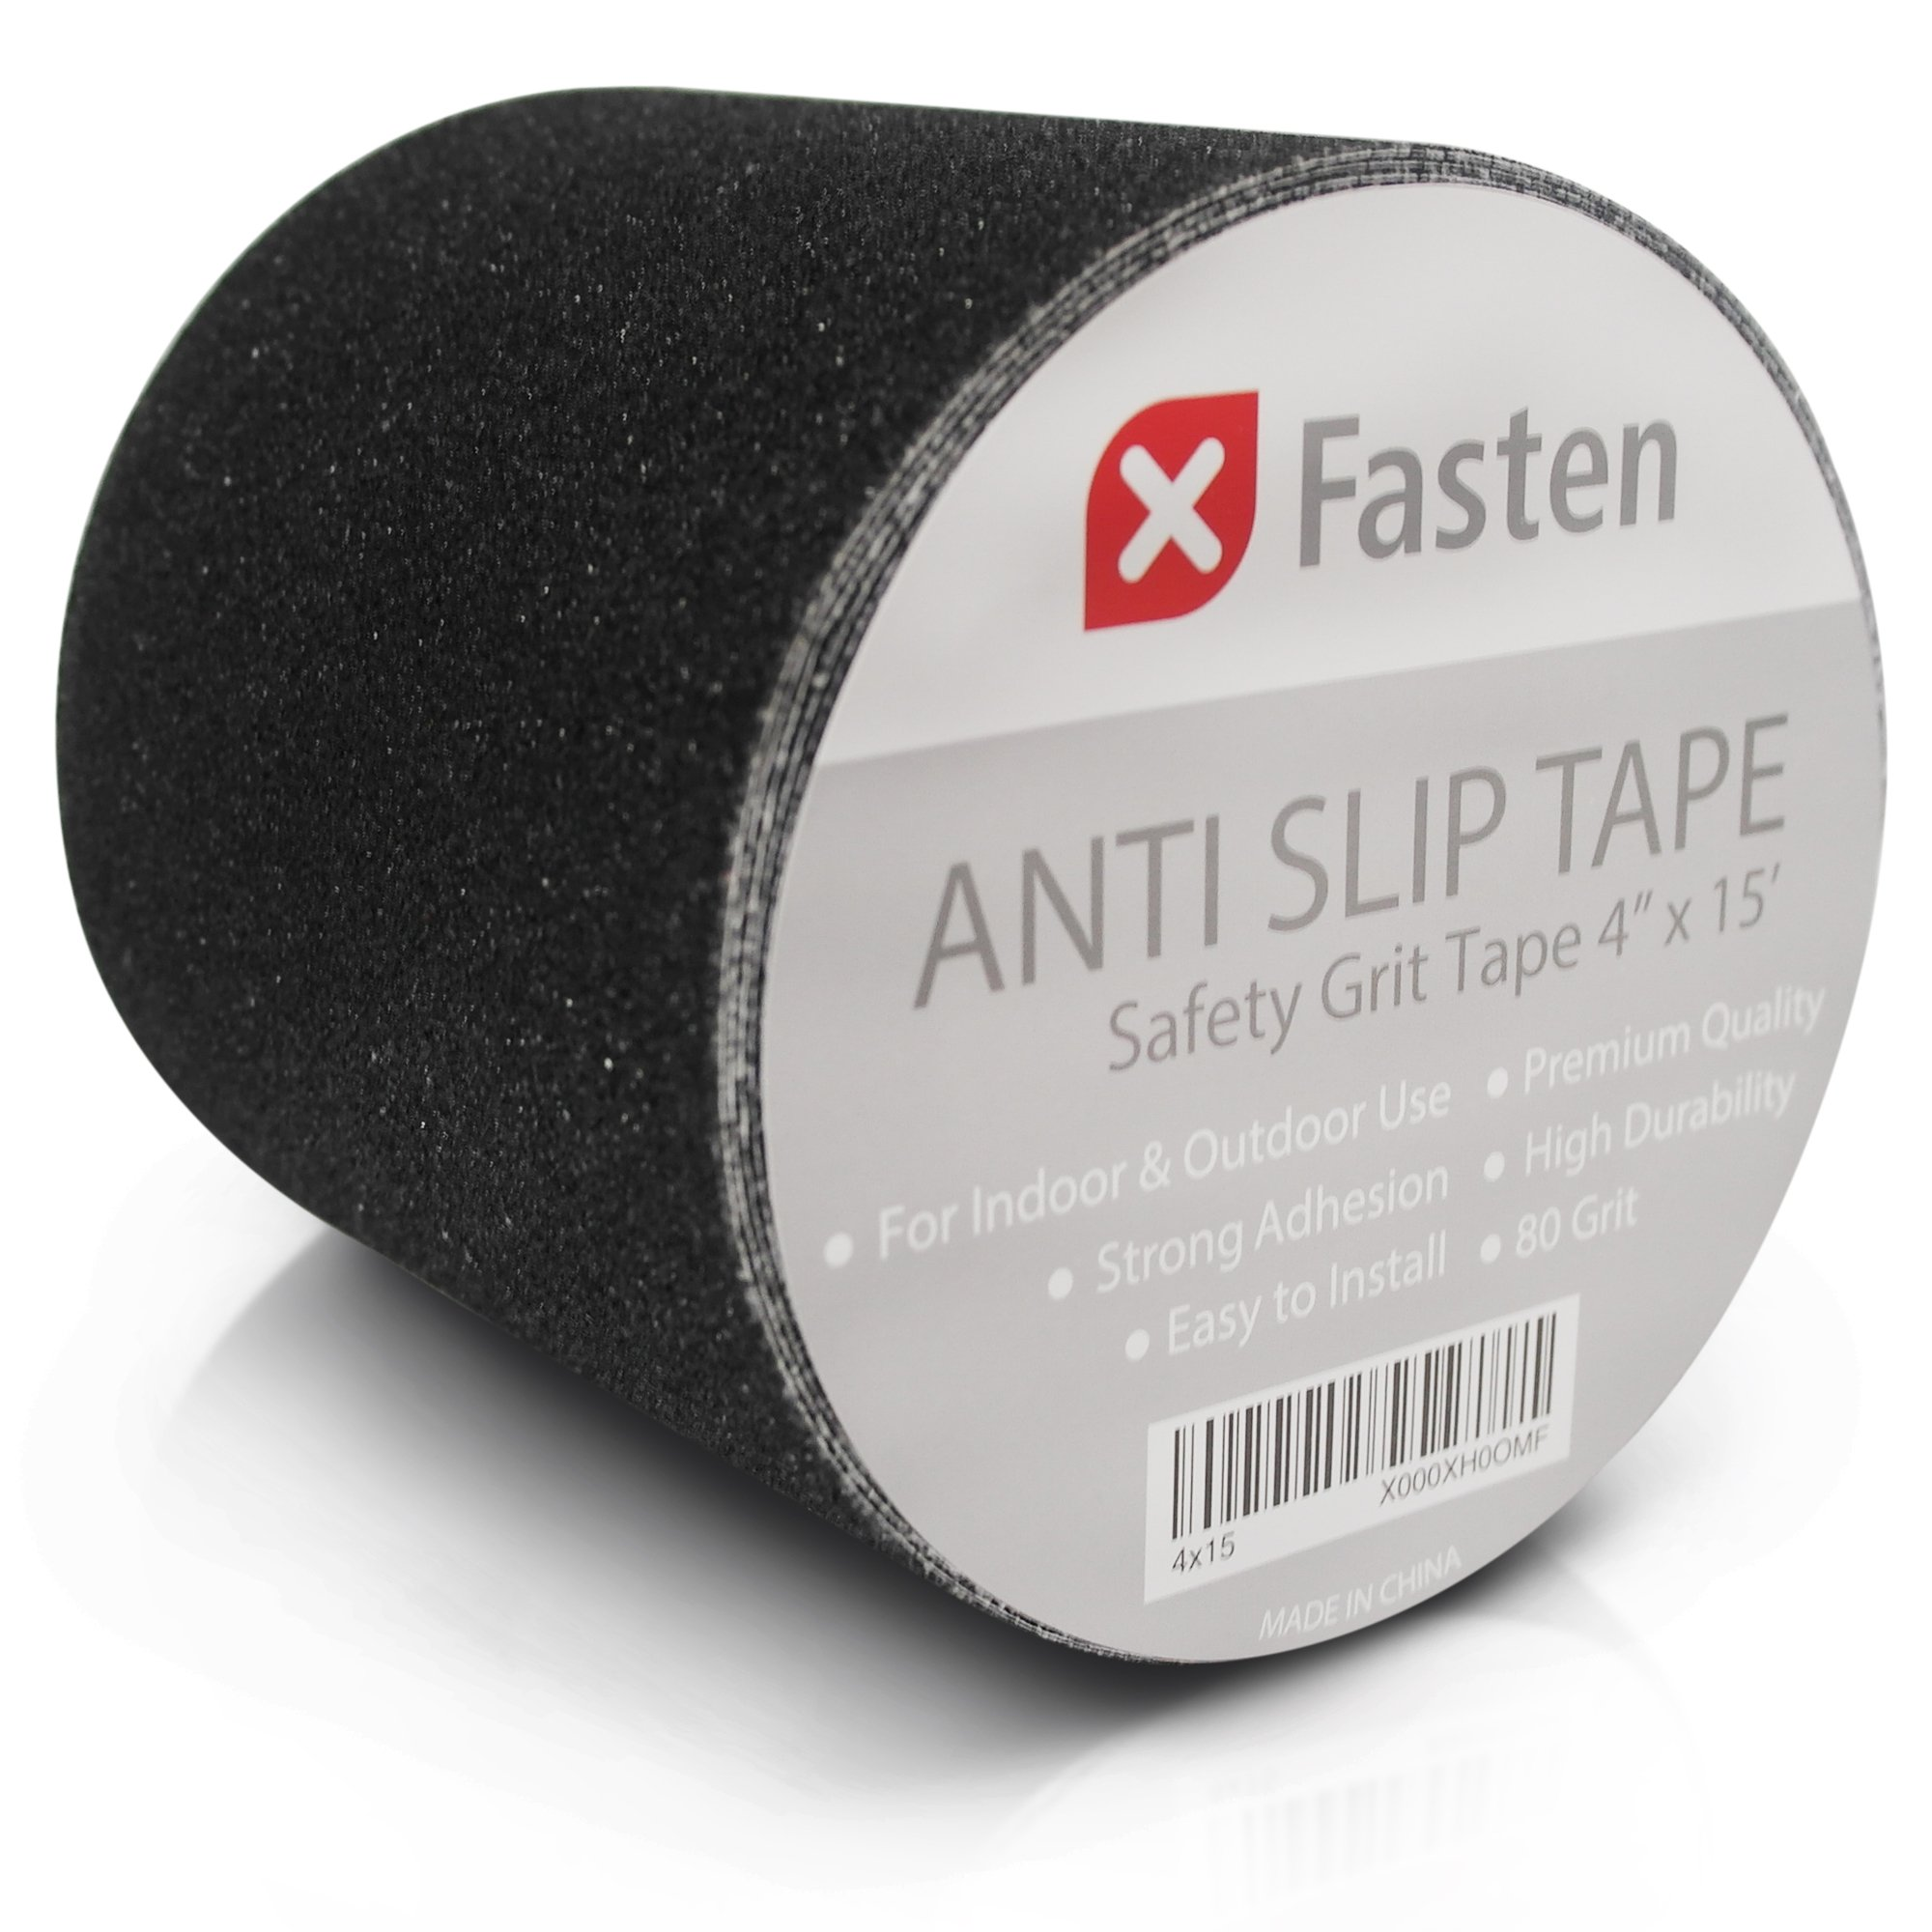 XFasten Anti Slip Tape, 4-Inch by 15-Foot Pet-Safe, Hypo-Allergenic, Weather proof and Non Skid Indoor and Outdoor Safety Track Tape